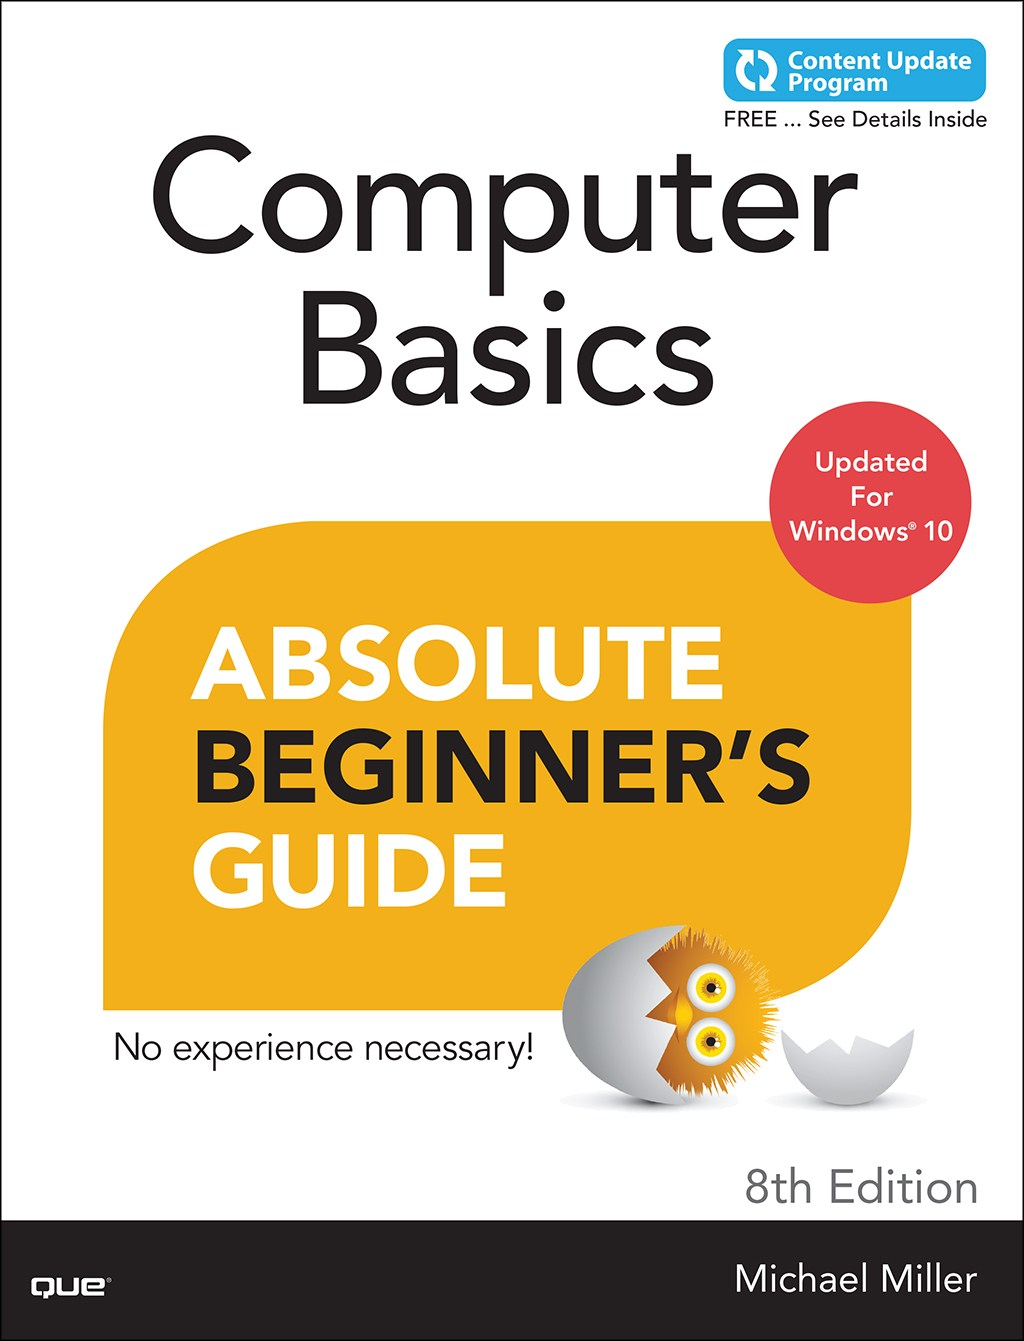 Computer Basics Absolute Beginner's Guide, Windows 10 Edition (includes Content Update Program), 8th Edition